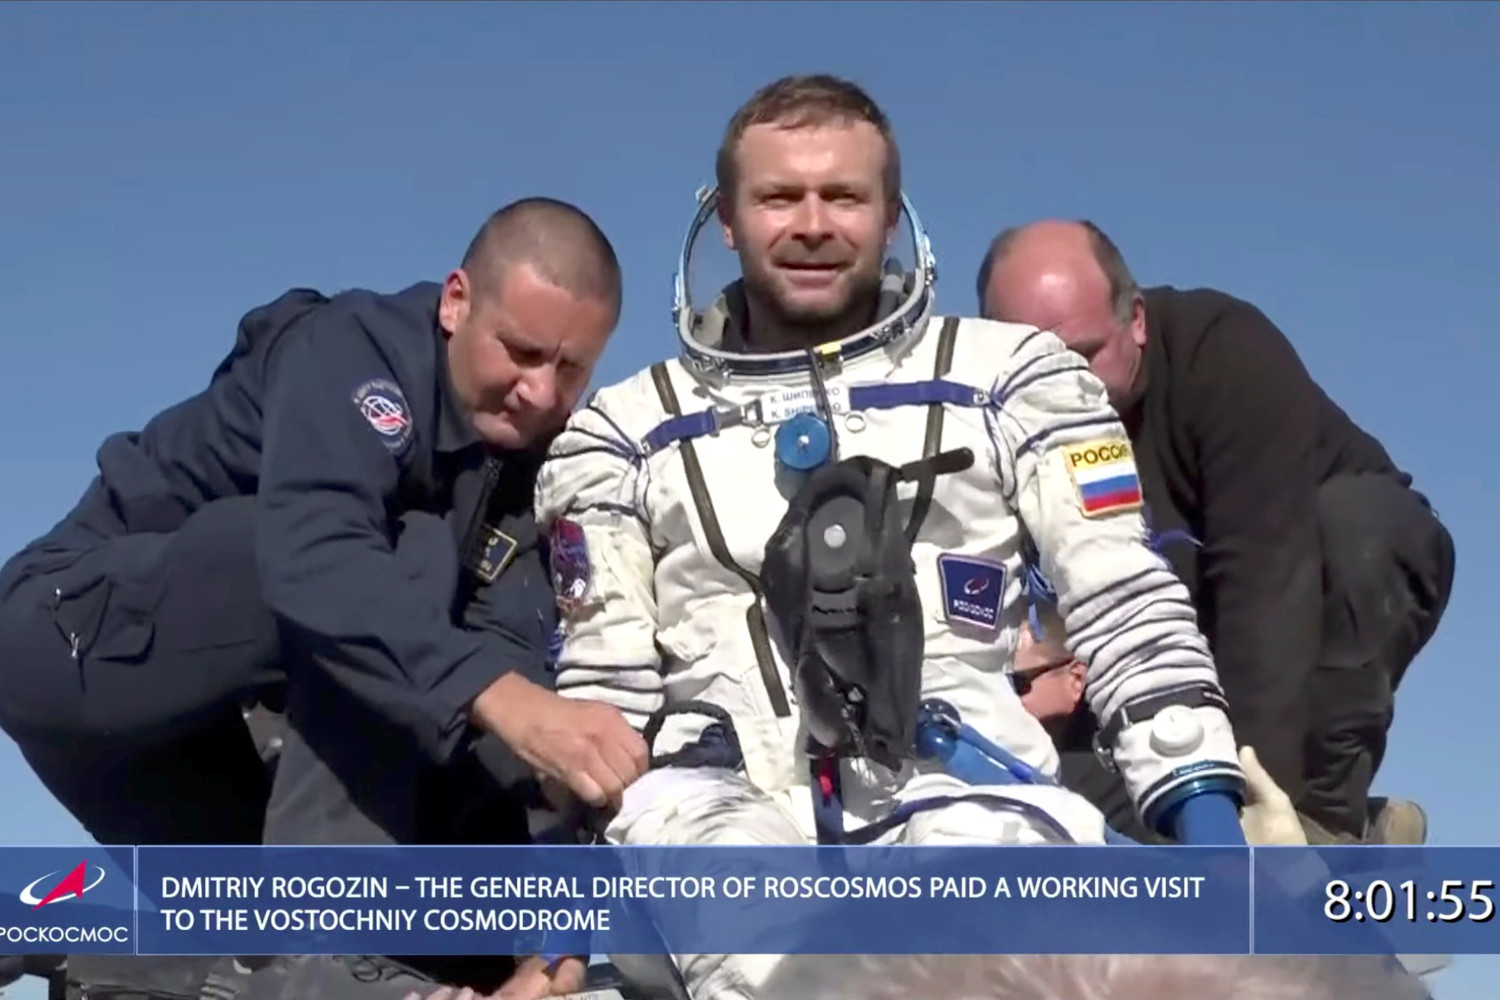 upload-2021-10-17T060135Z_1638900286_RC2IBQ9PDQVH_RTRMADP_3_SPACE-EXPLORATION-RUSSIA-MOVIE-LANDING-pic4_zoom-1500x1500-16427.jpg